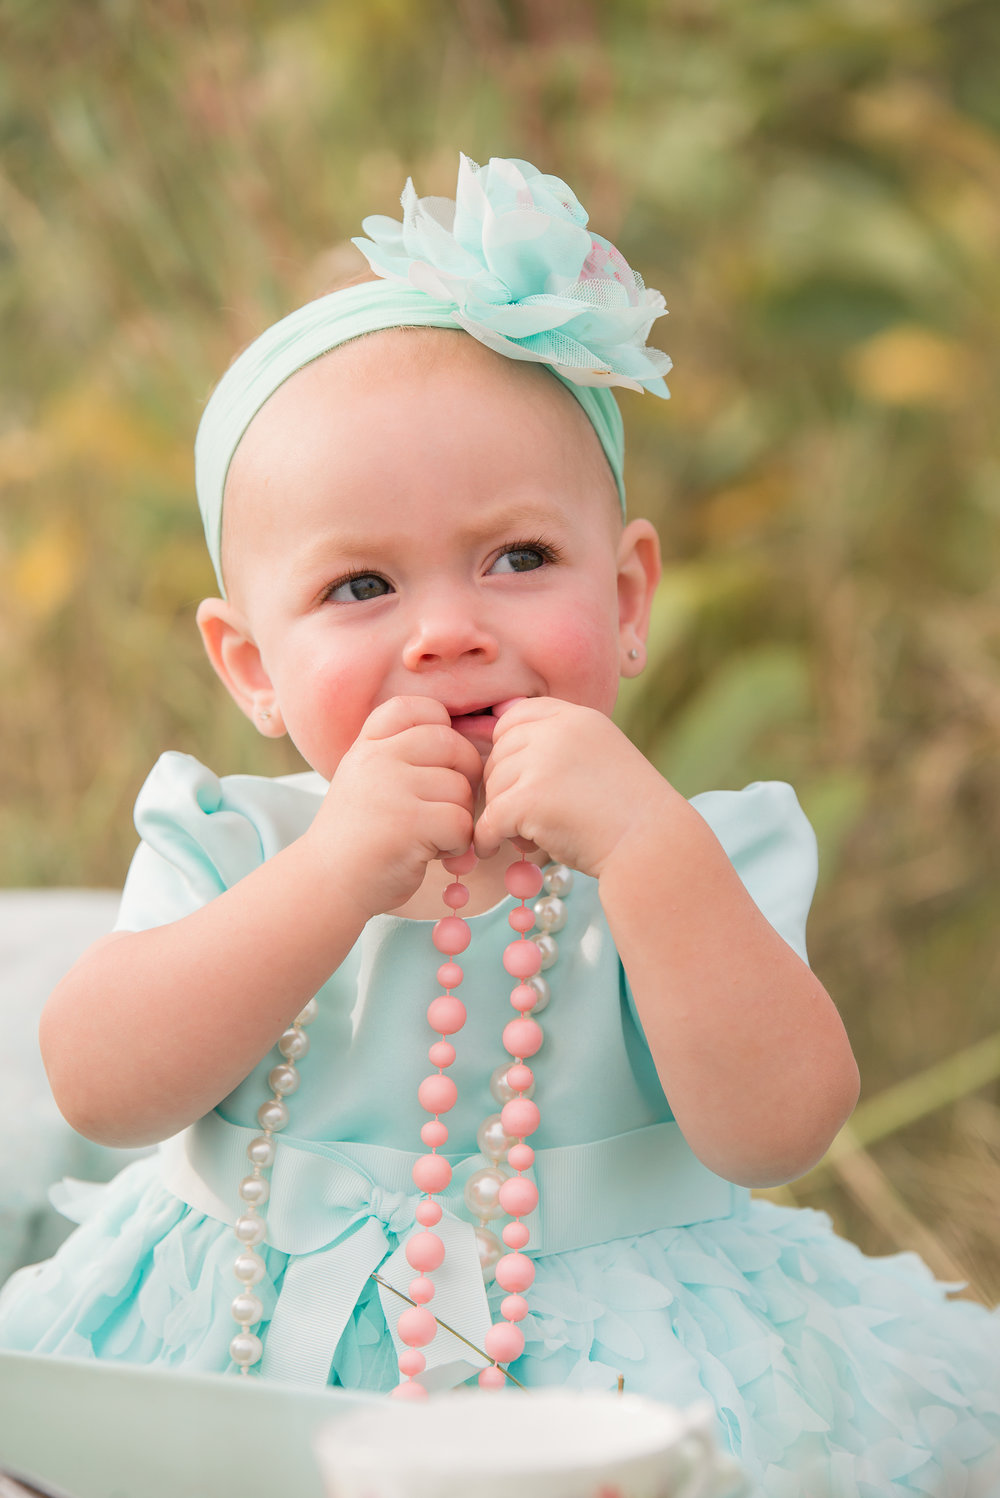 Naomi Lucienne Photography - First Birthday - 170829302.jpg